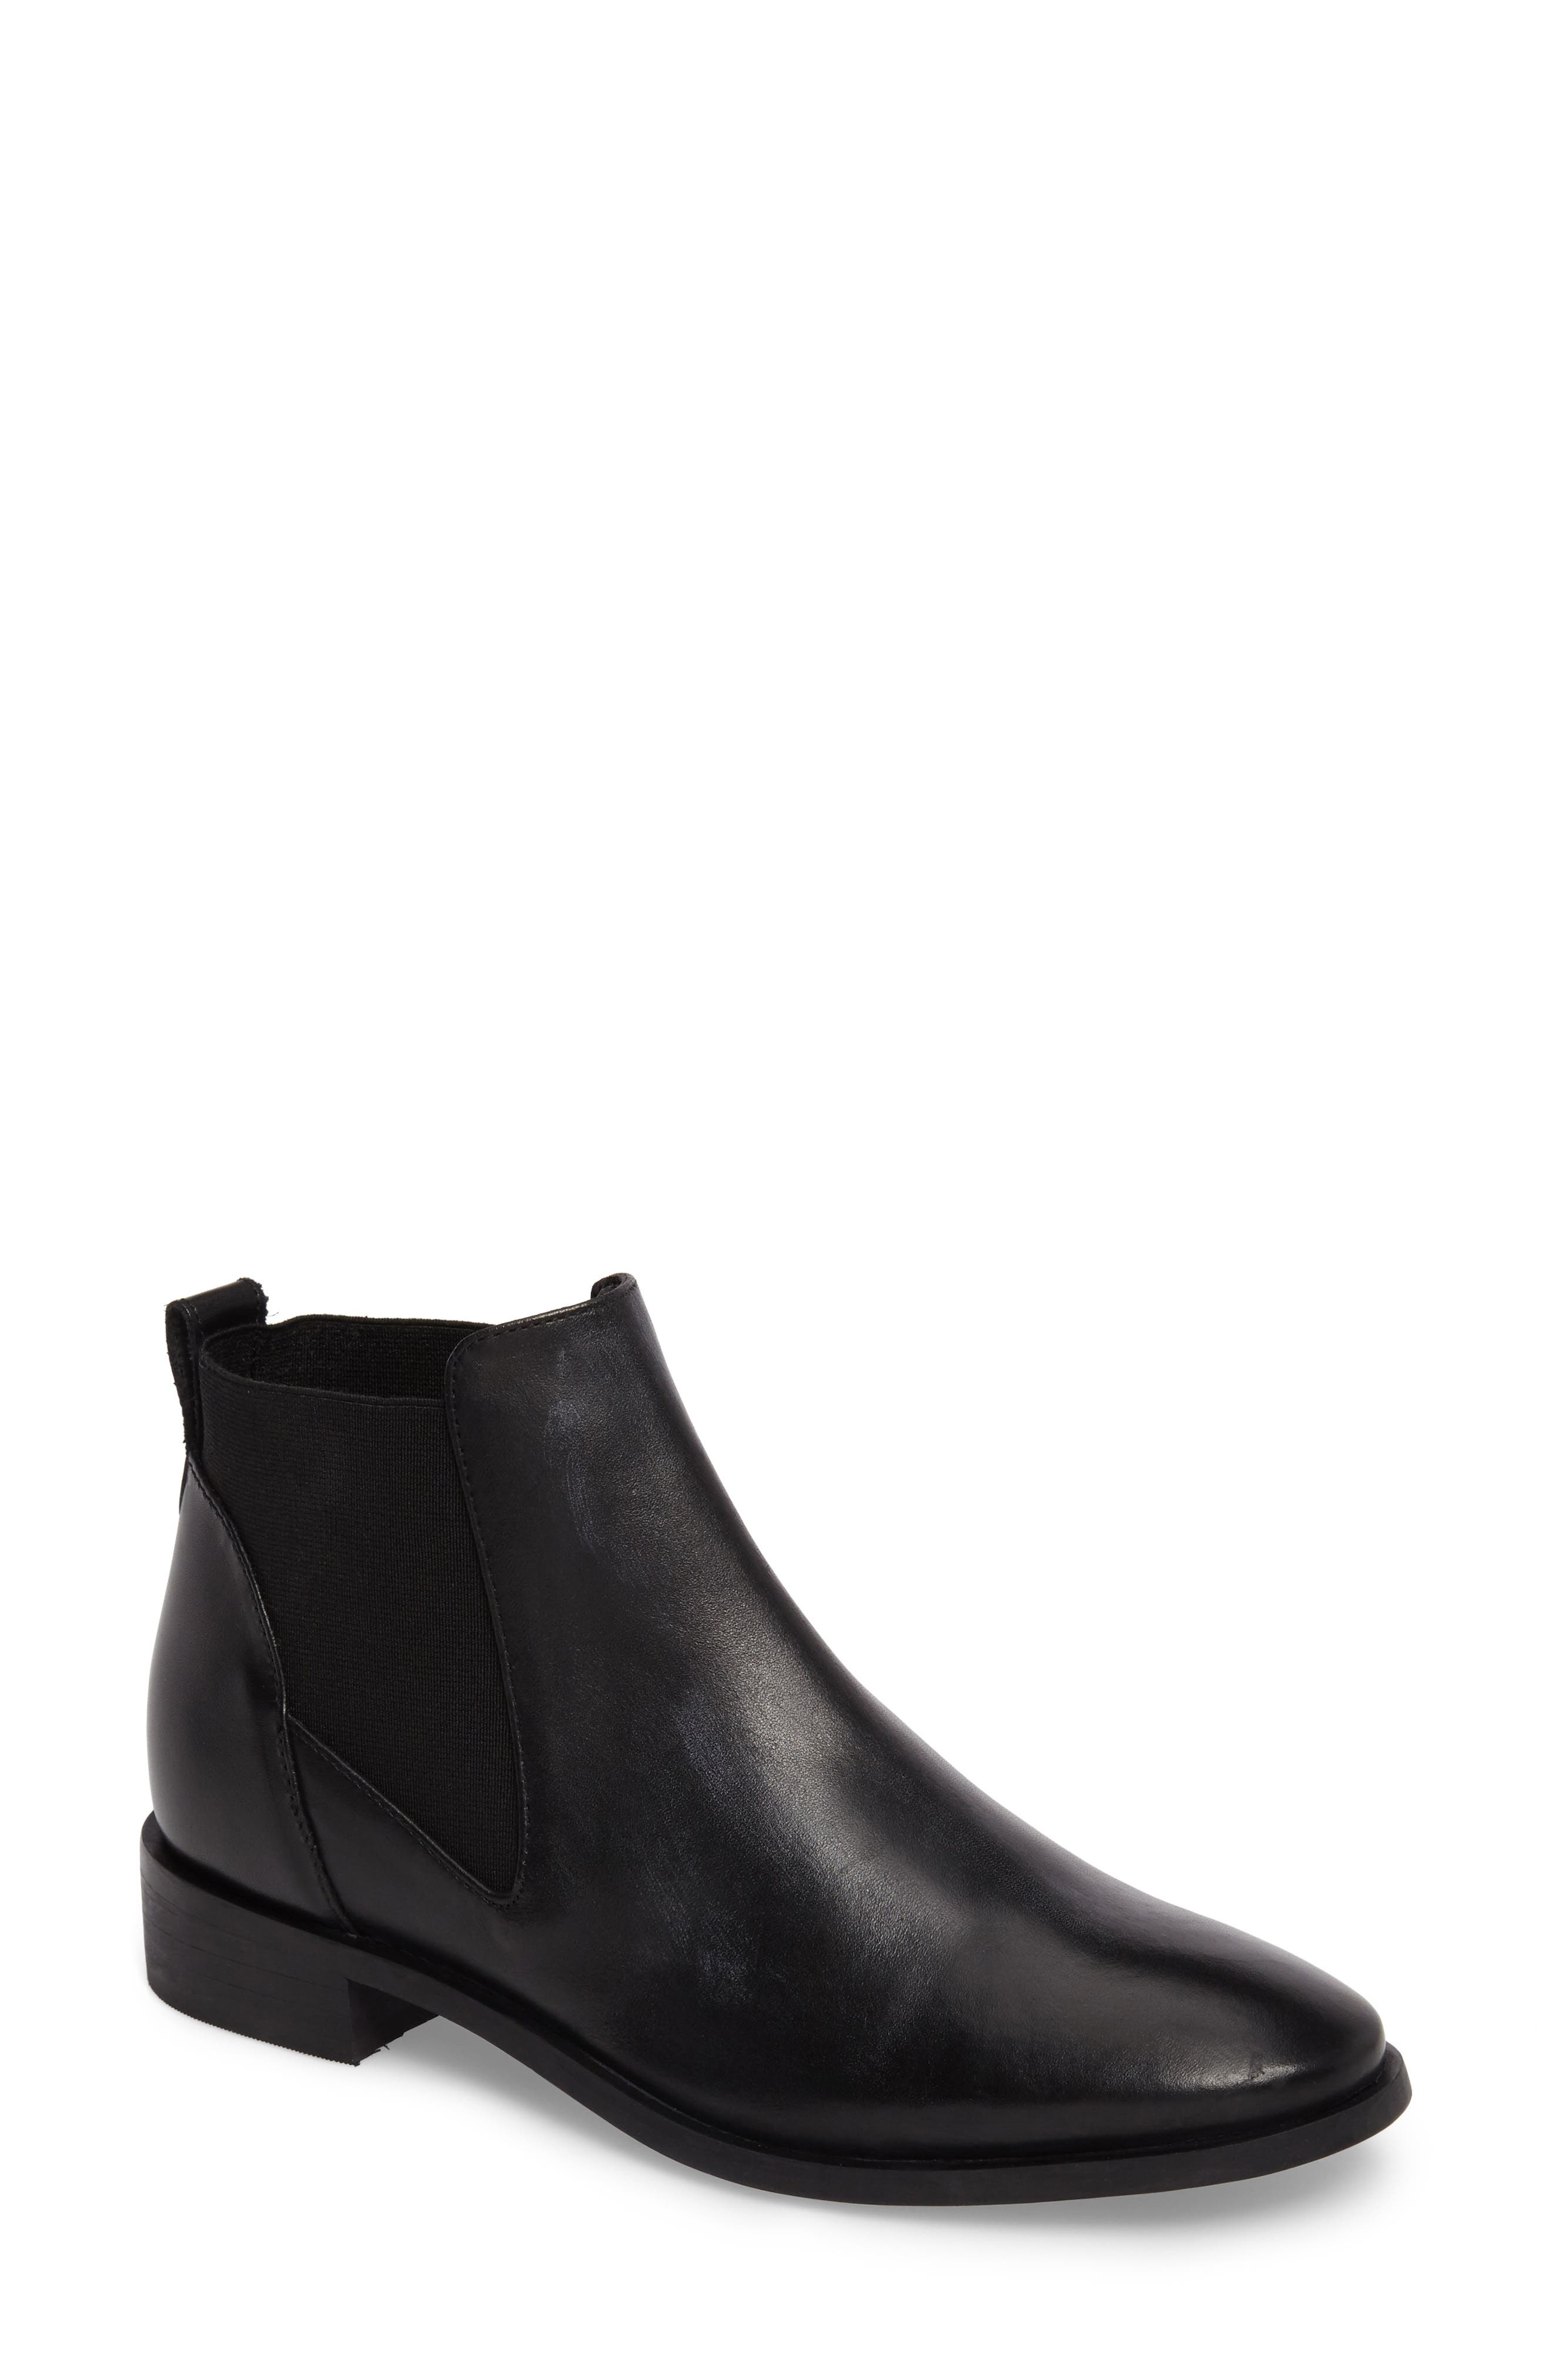 King Chelsea Boot,                         Main,                         color, 001